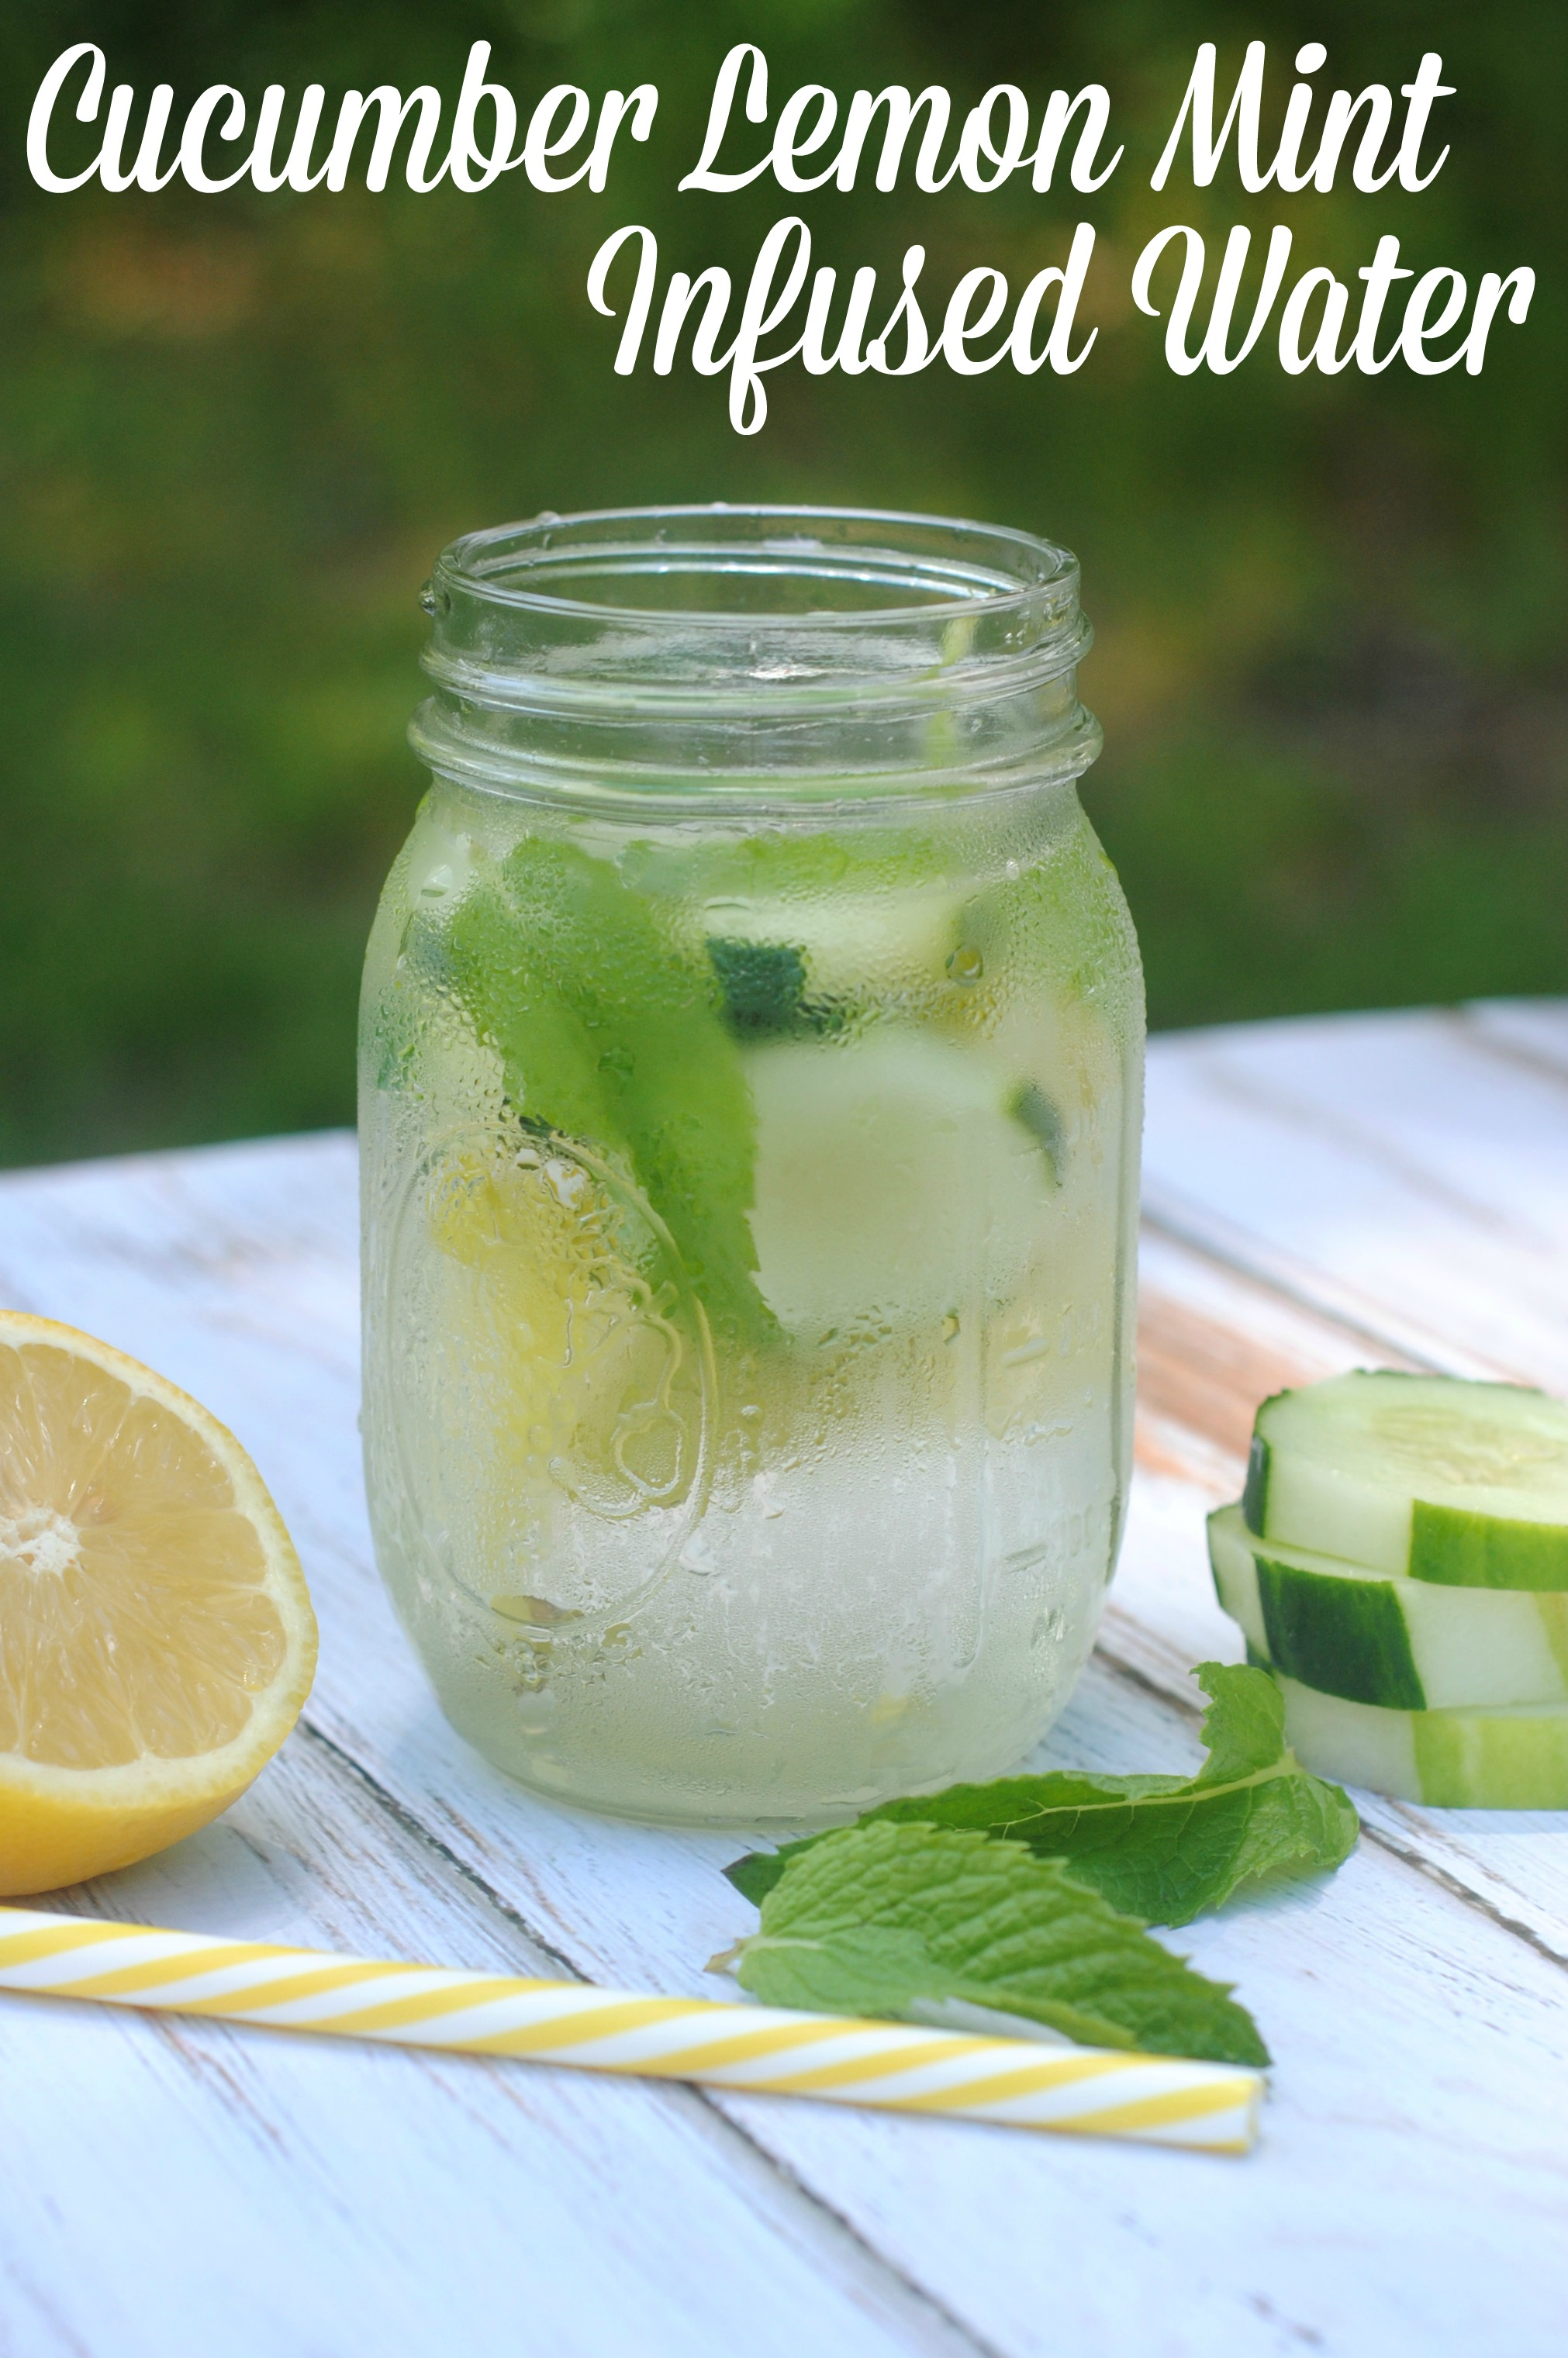 Patty's Fountain of Youth is a delicious Lemon, Cucumber, Ginger & Mint water recipe that aids in weight loss and cleansing the body. Remove the lemon slices, ginger and mint leaves before pouring. Drink the entire pitcher by the end of each day.